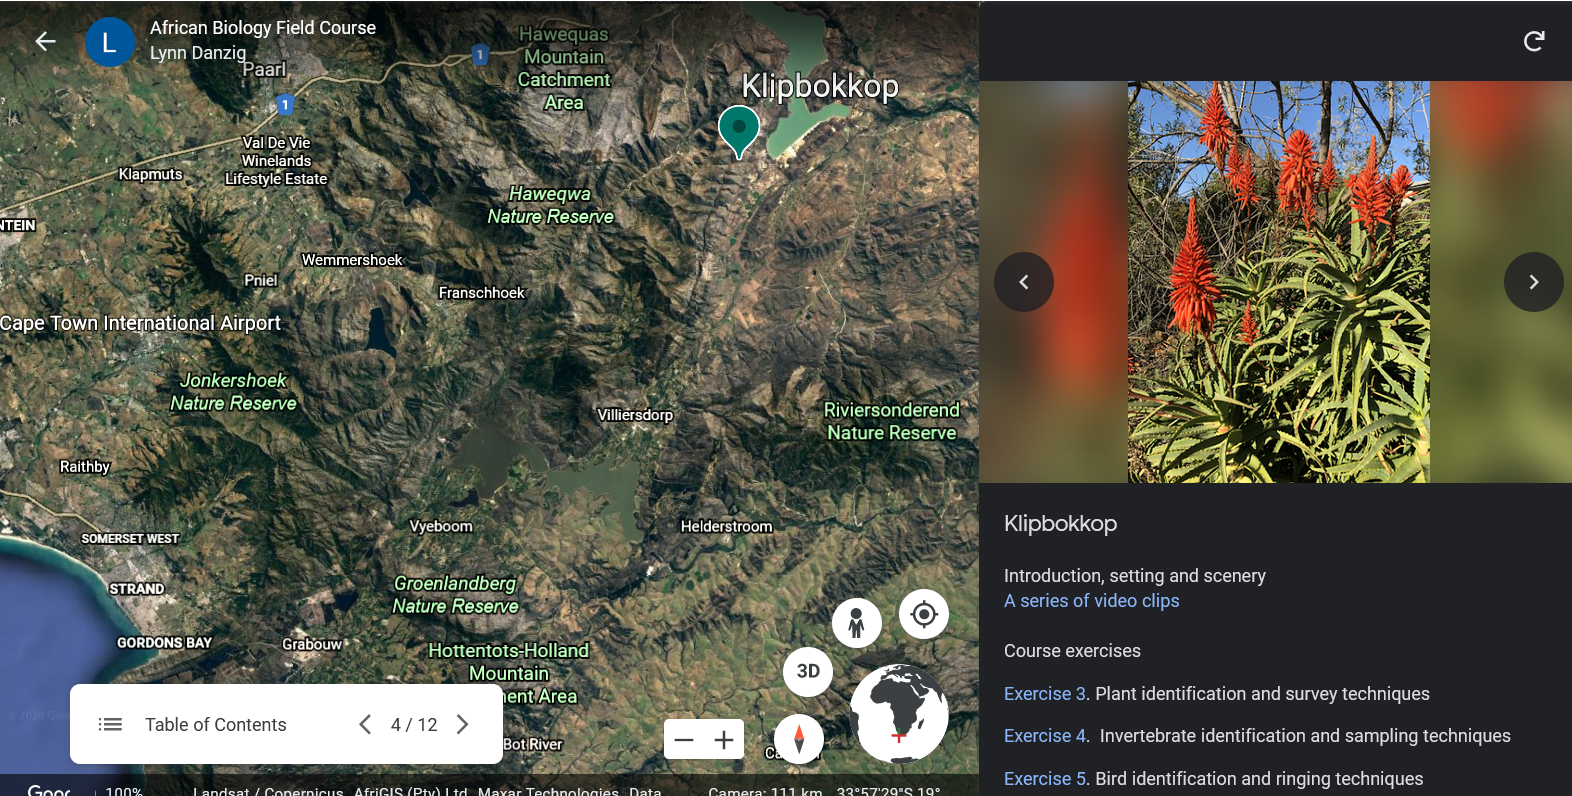 An image showing and example of the Google Earth virtual tour